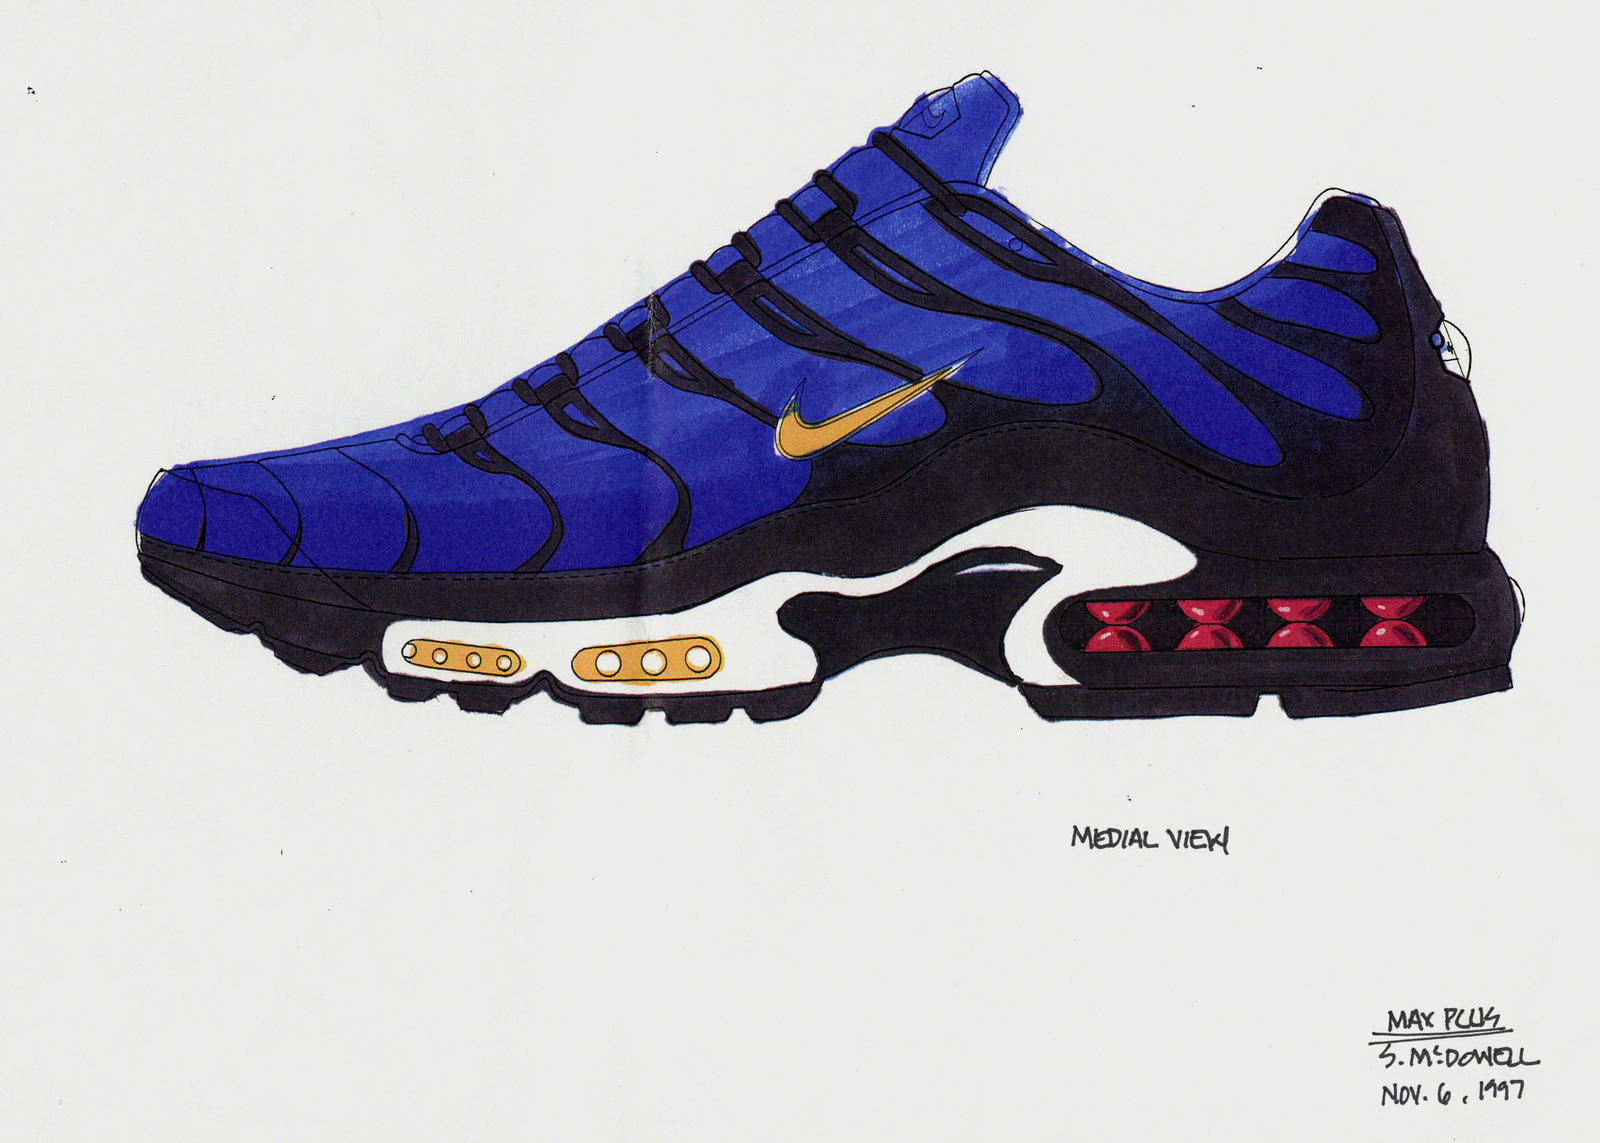 Nike air max plus tn sketch 2 native 1600